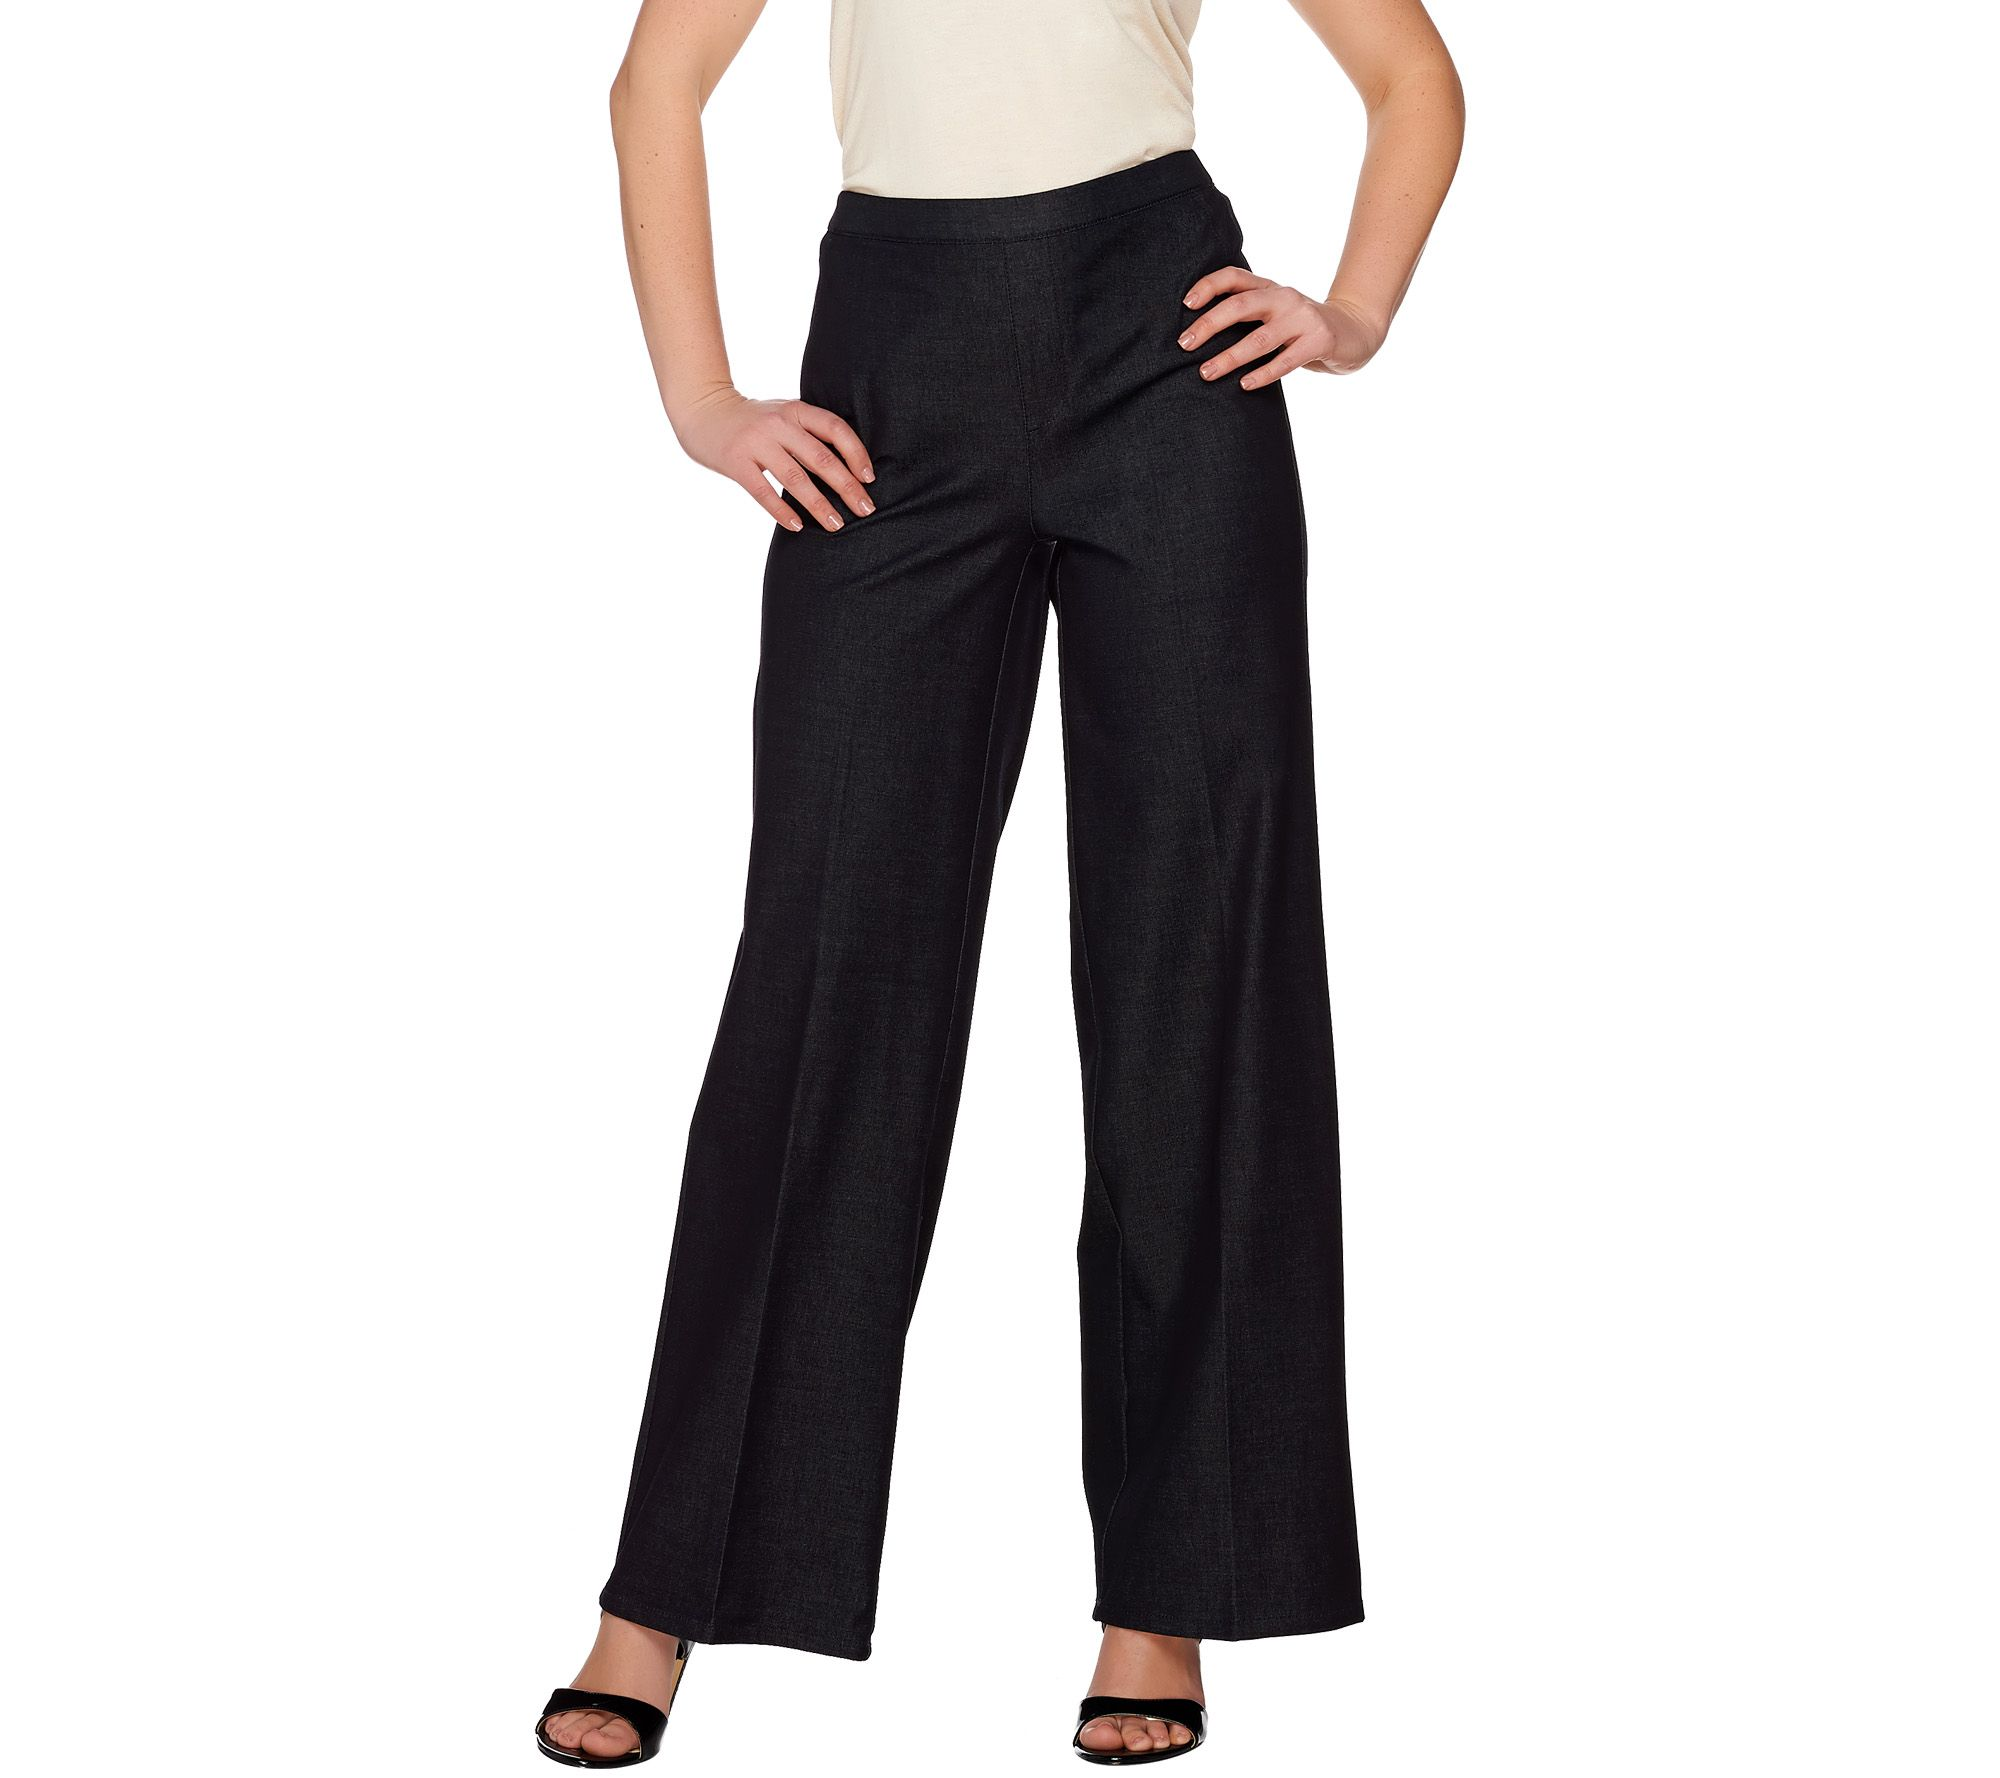 H by Halston Studio Stretch Pull-on Wide Leg Pants - Page 1 — QVC.com